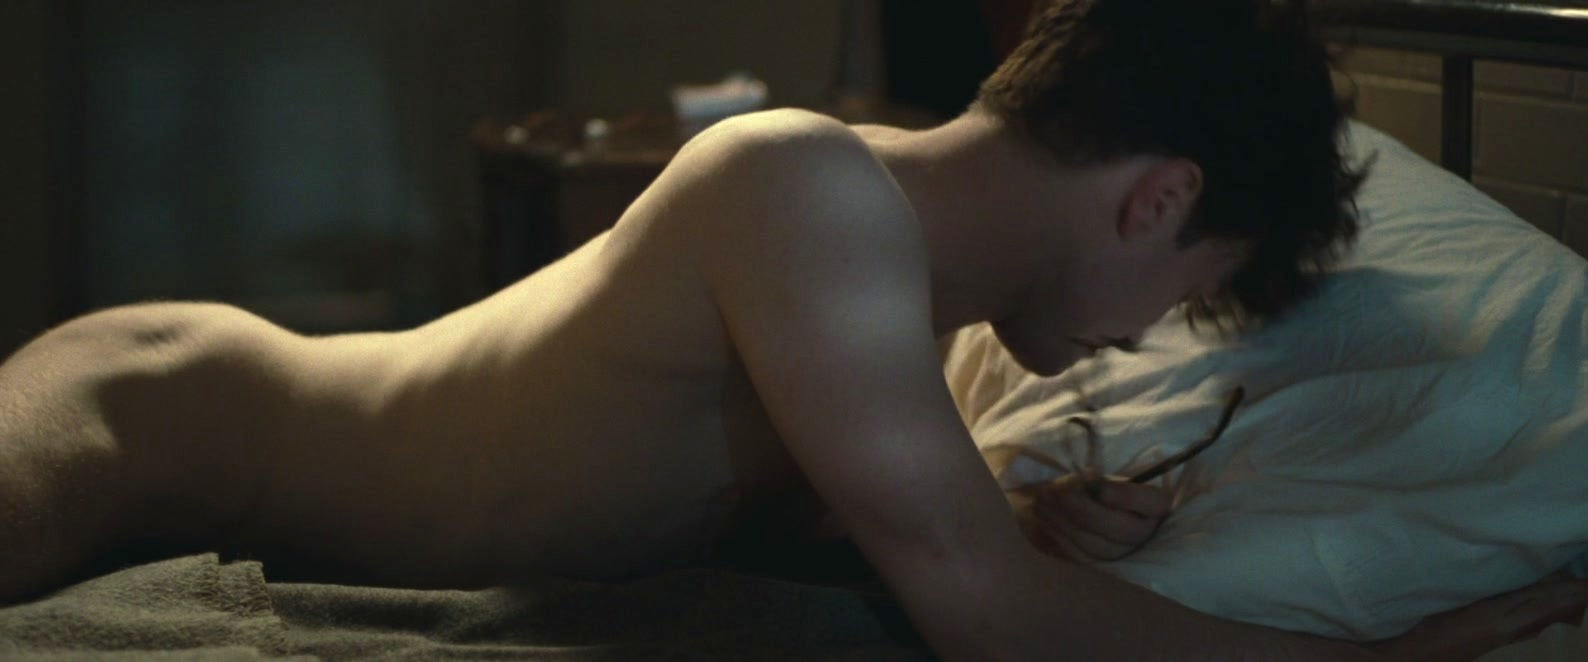 Daniel Radcliffe Naked Having Sex